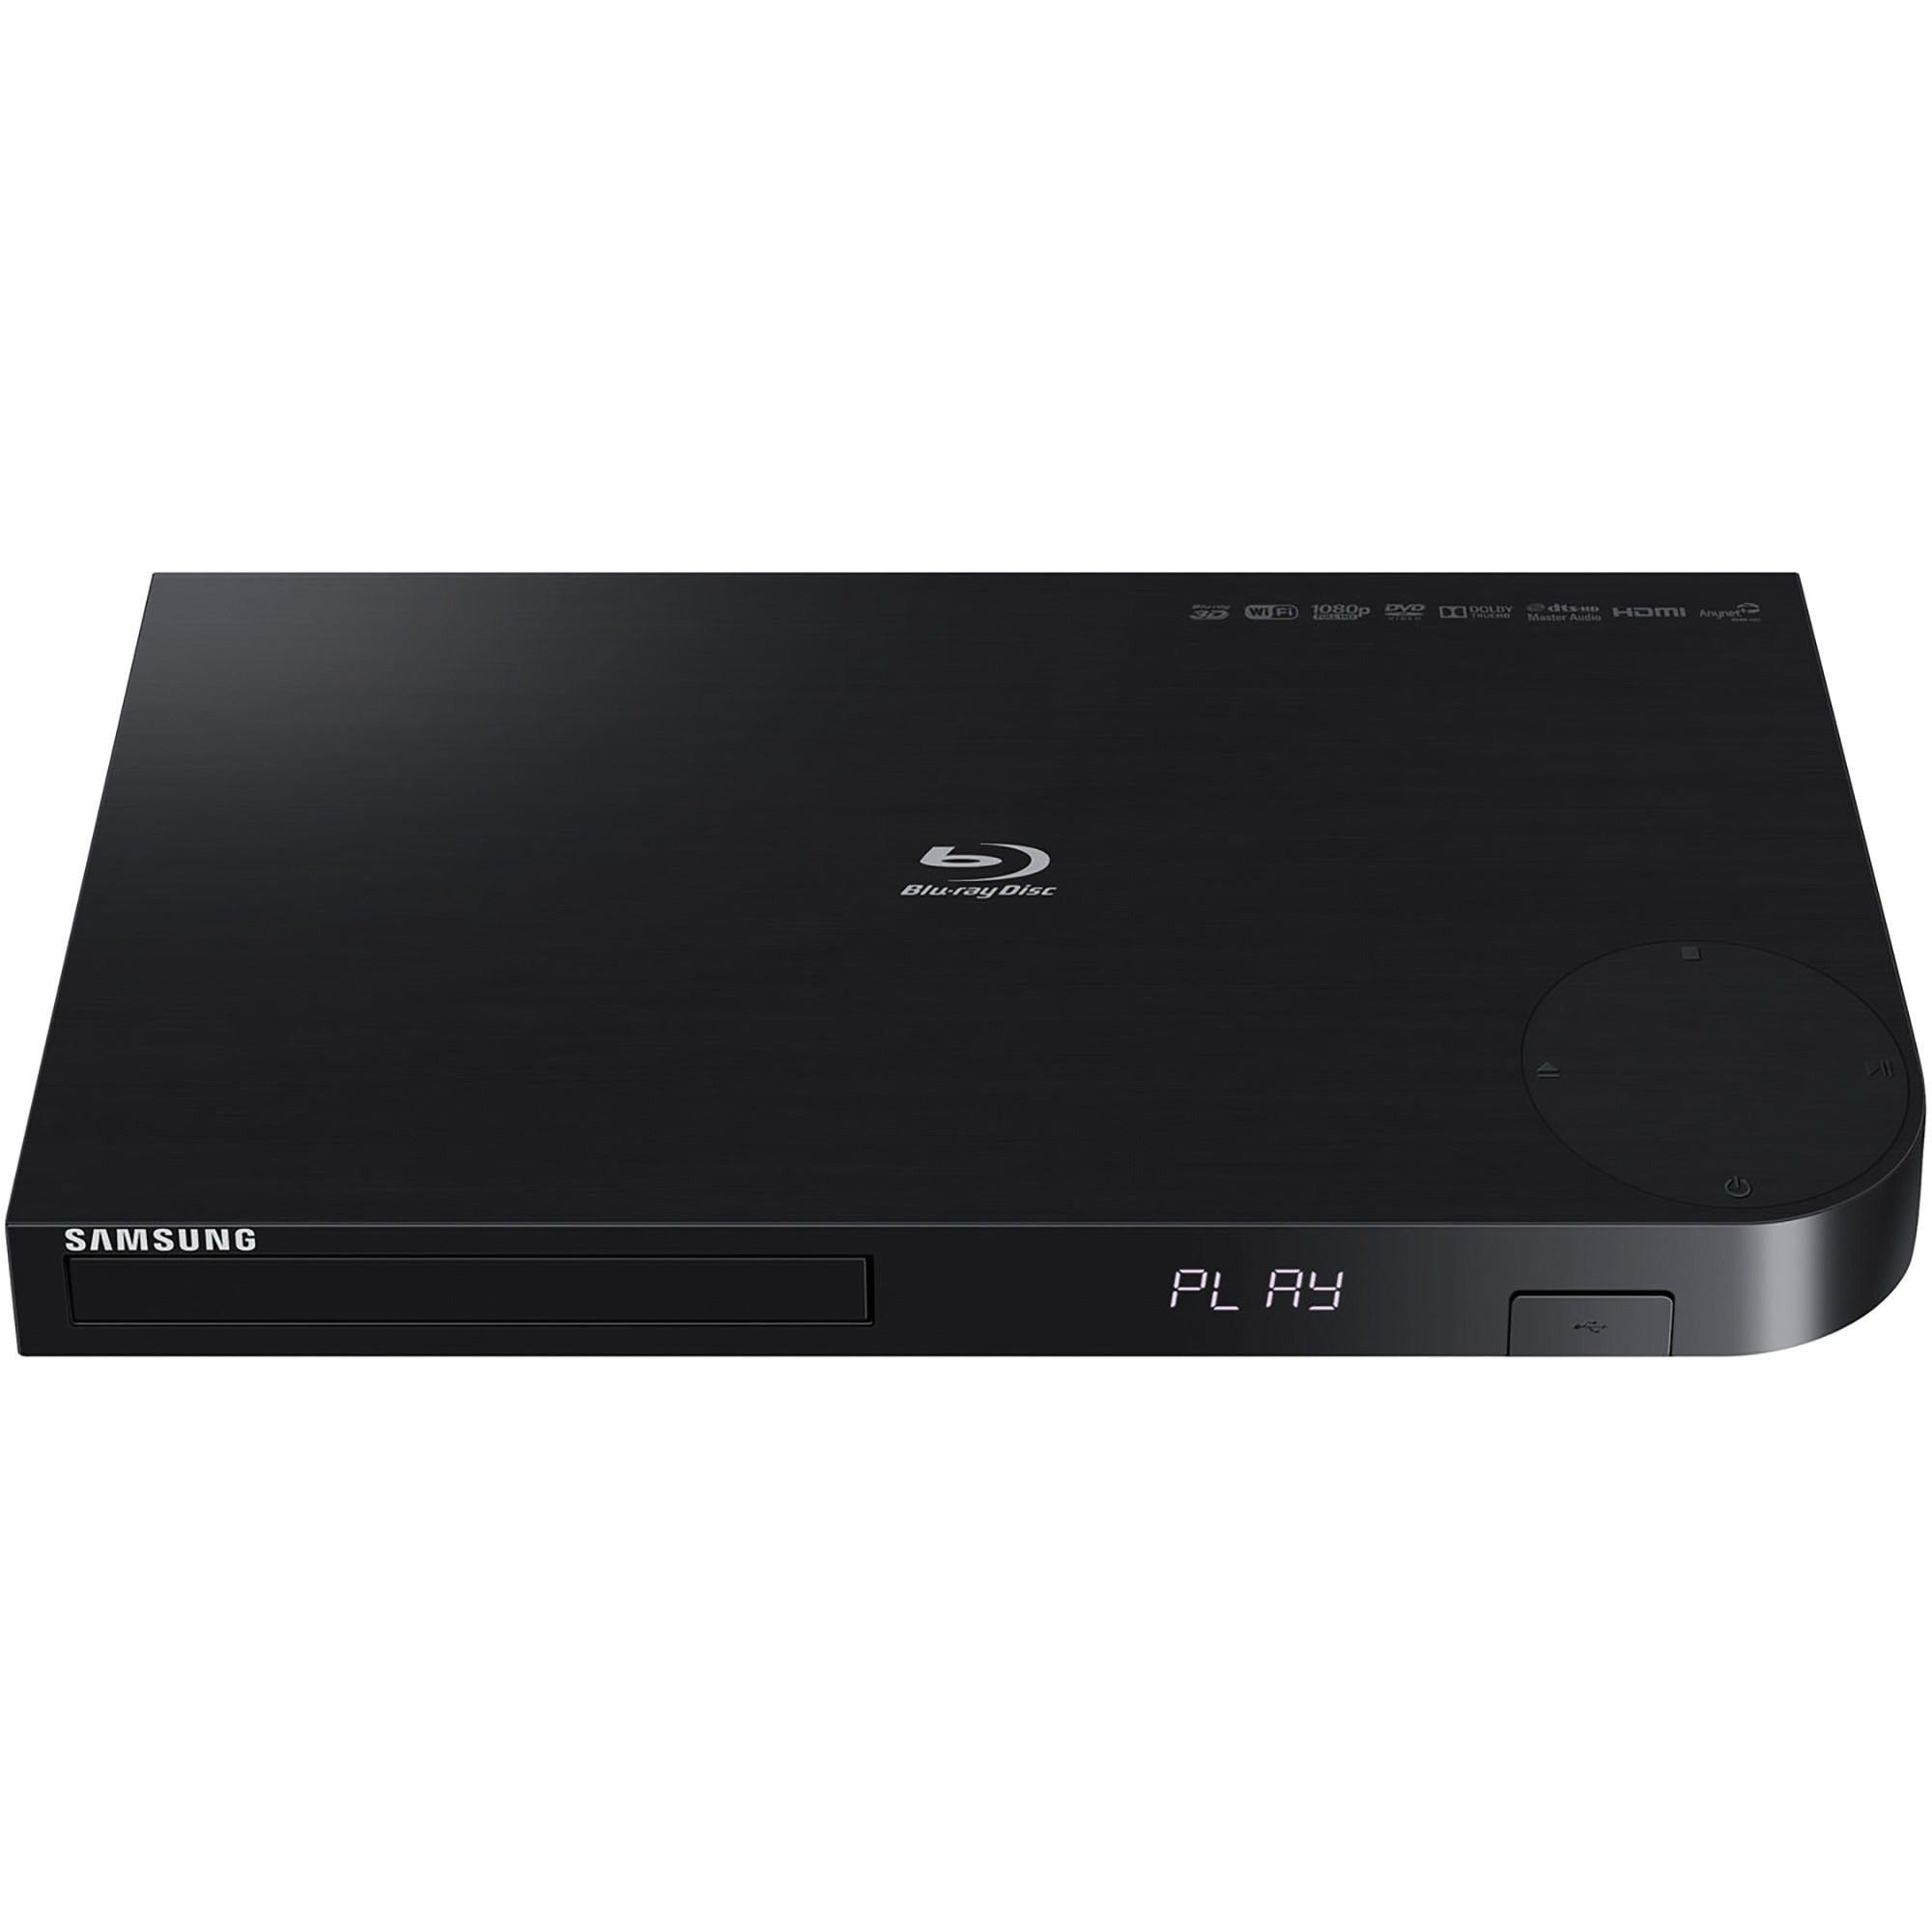 Samsung BD-J6300 1 Disc(s) 3D Blu-ray Disc Player - 1080p